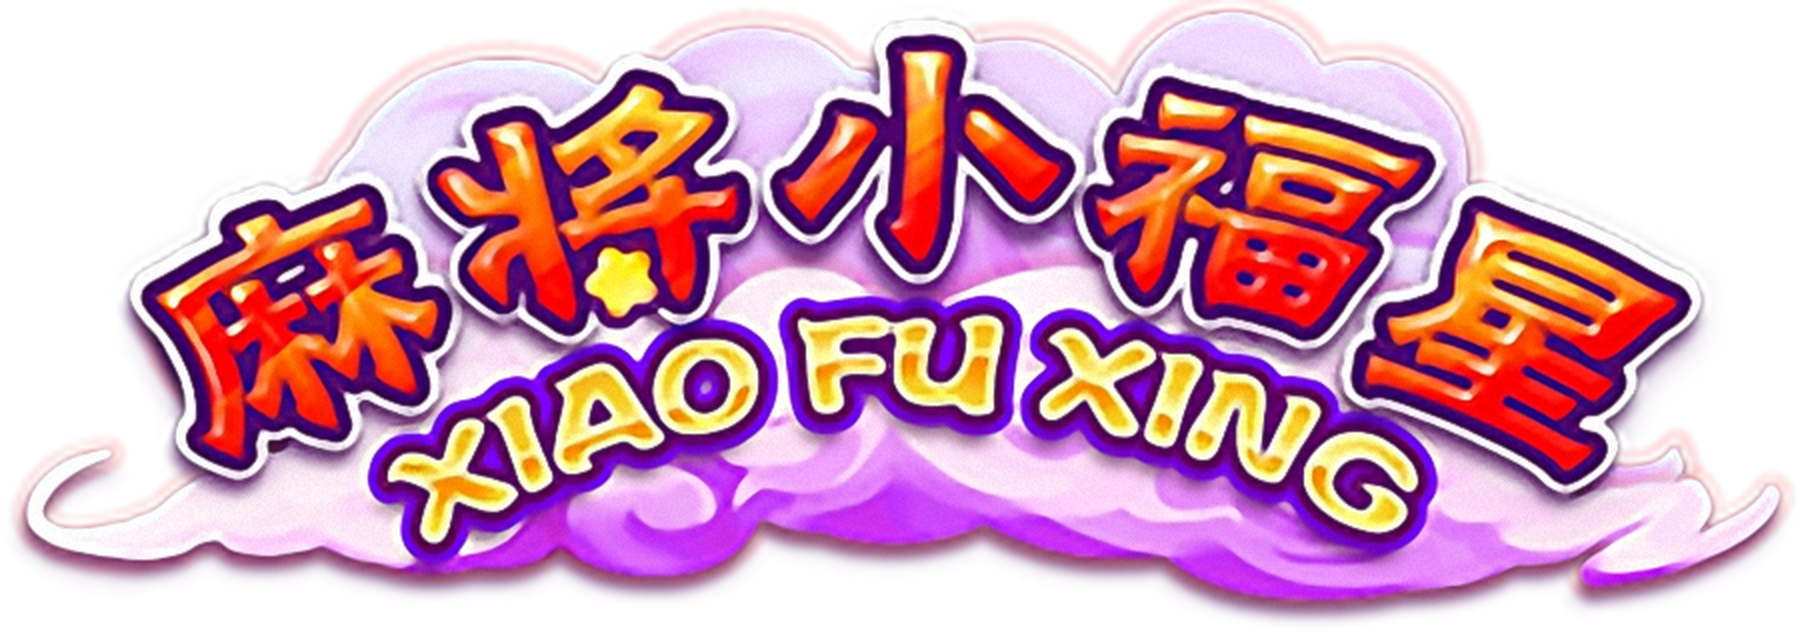 Xiao Fu Xing Online Slot Demo Game by Aspect Gaming